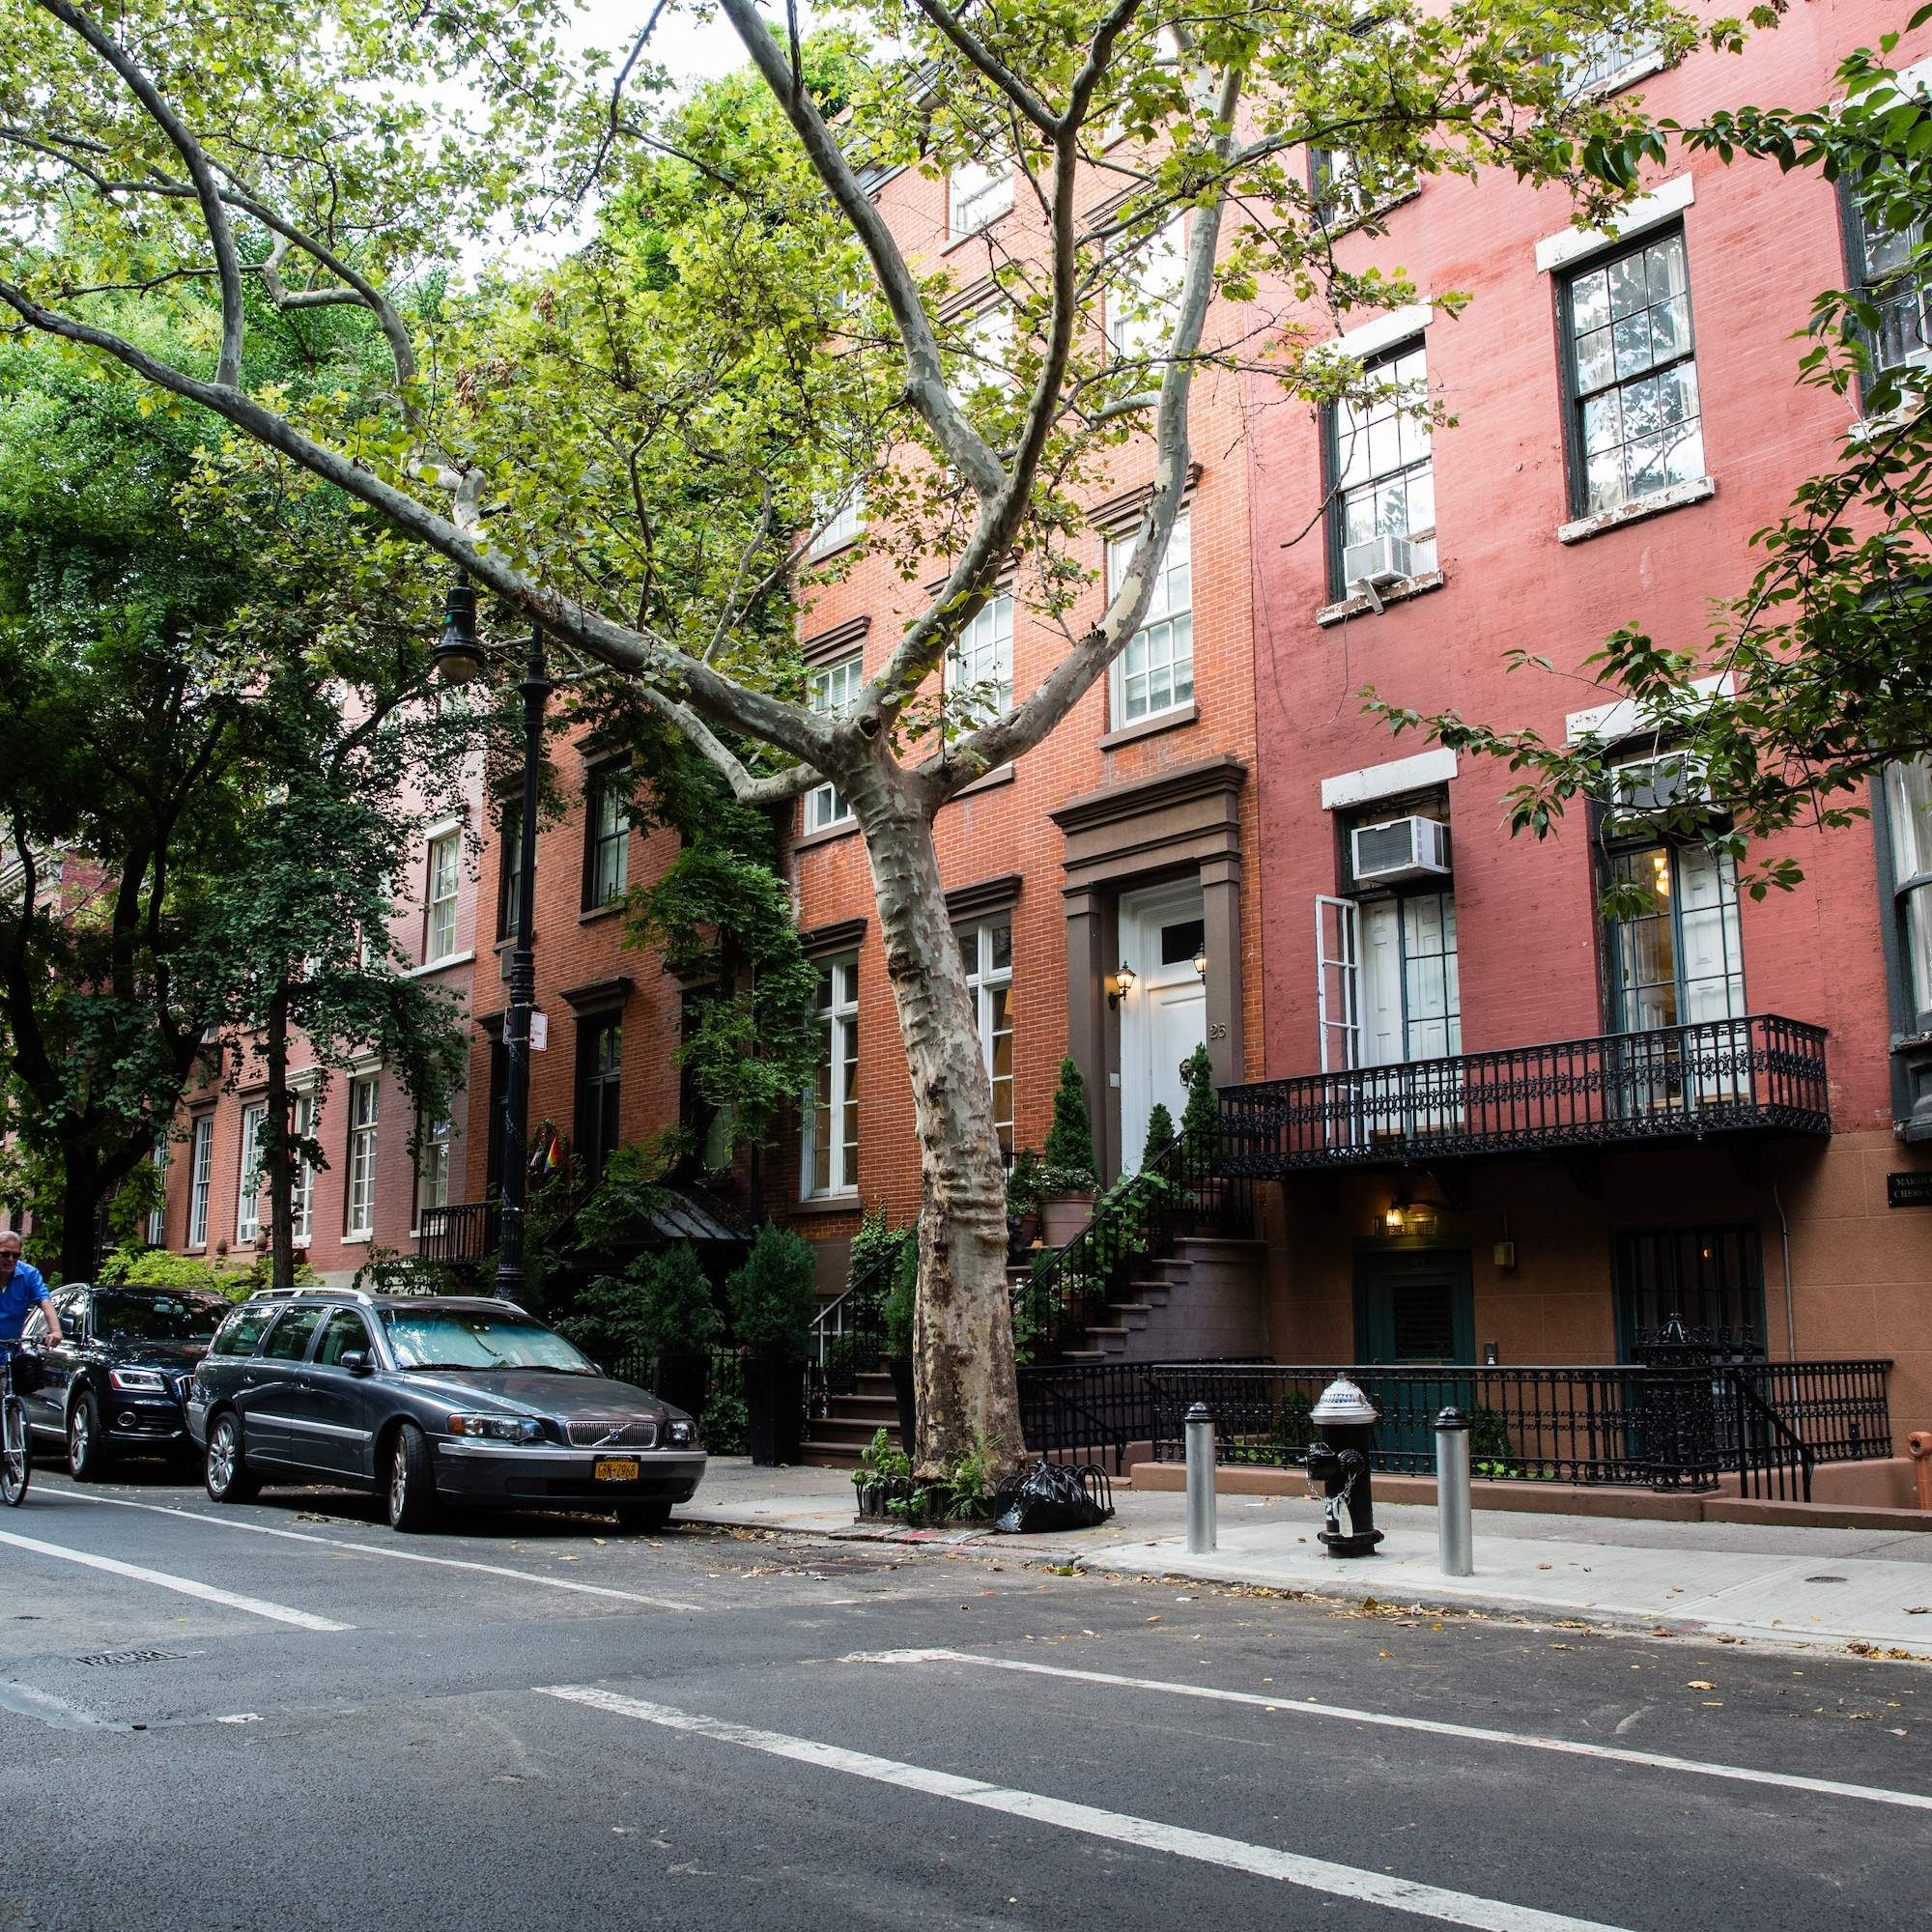 New York City Apartment Streets: The Most Beautiful Streets In New York City